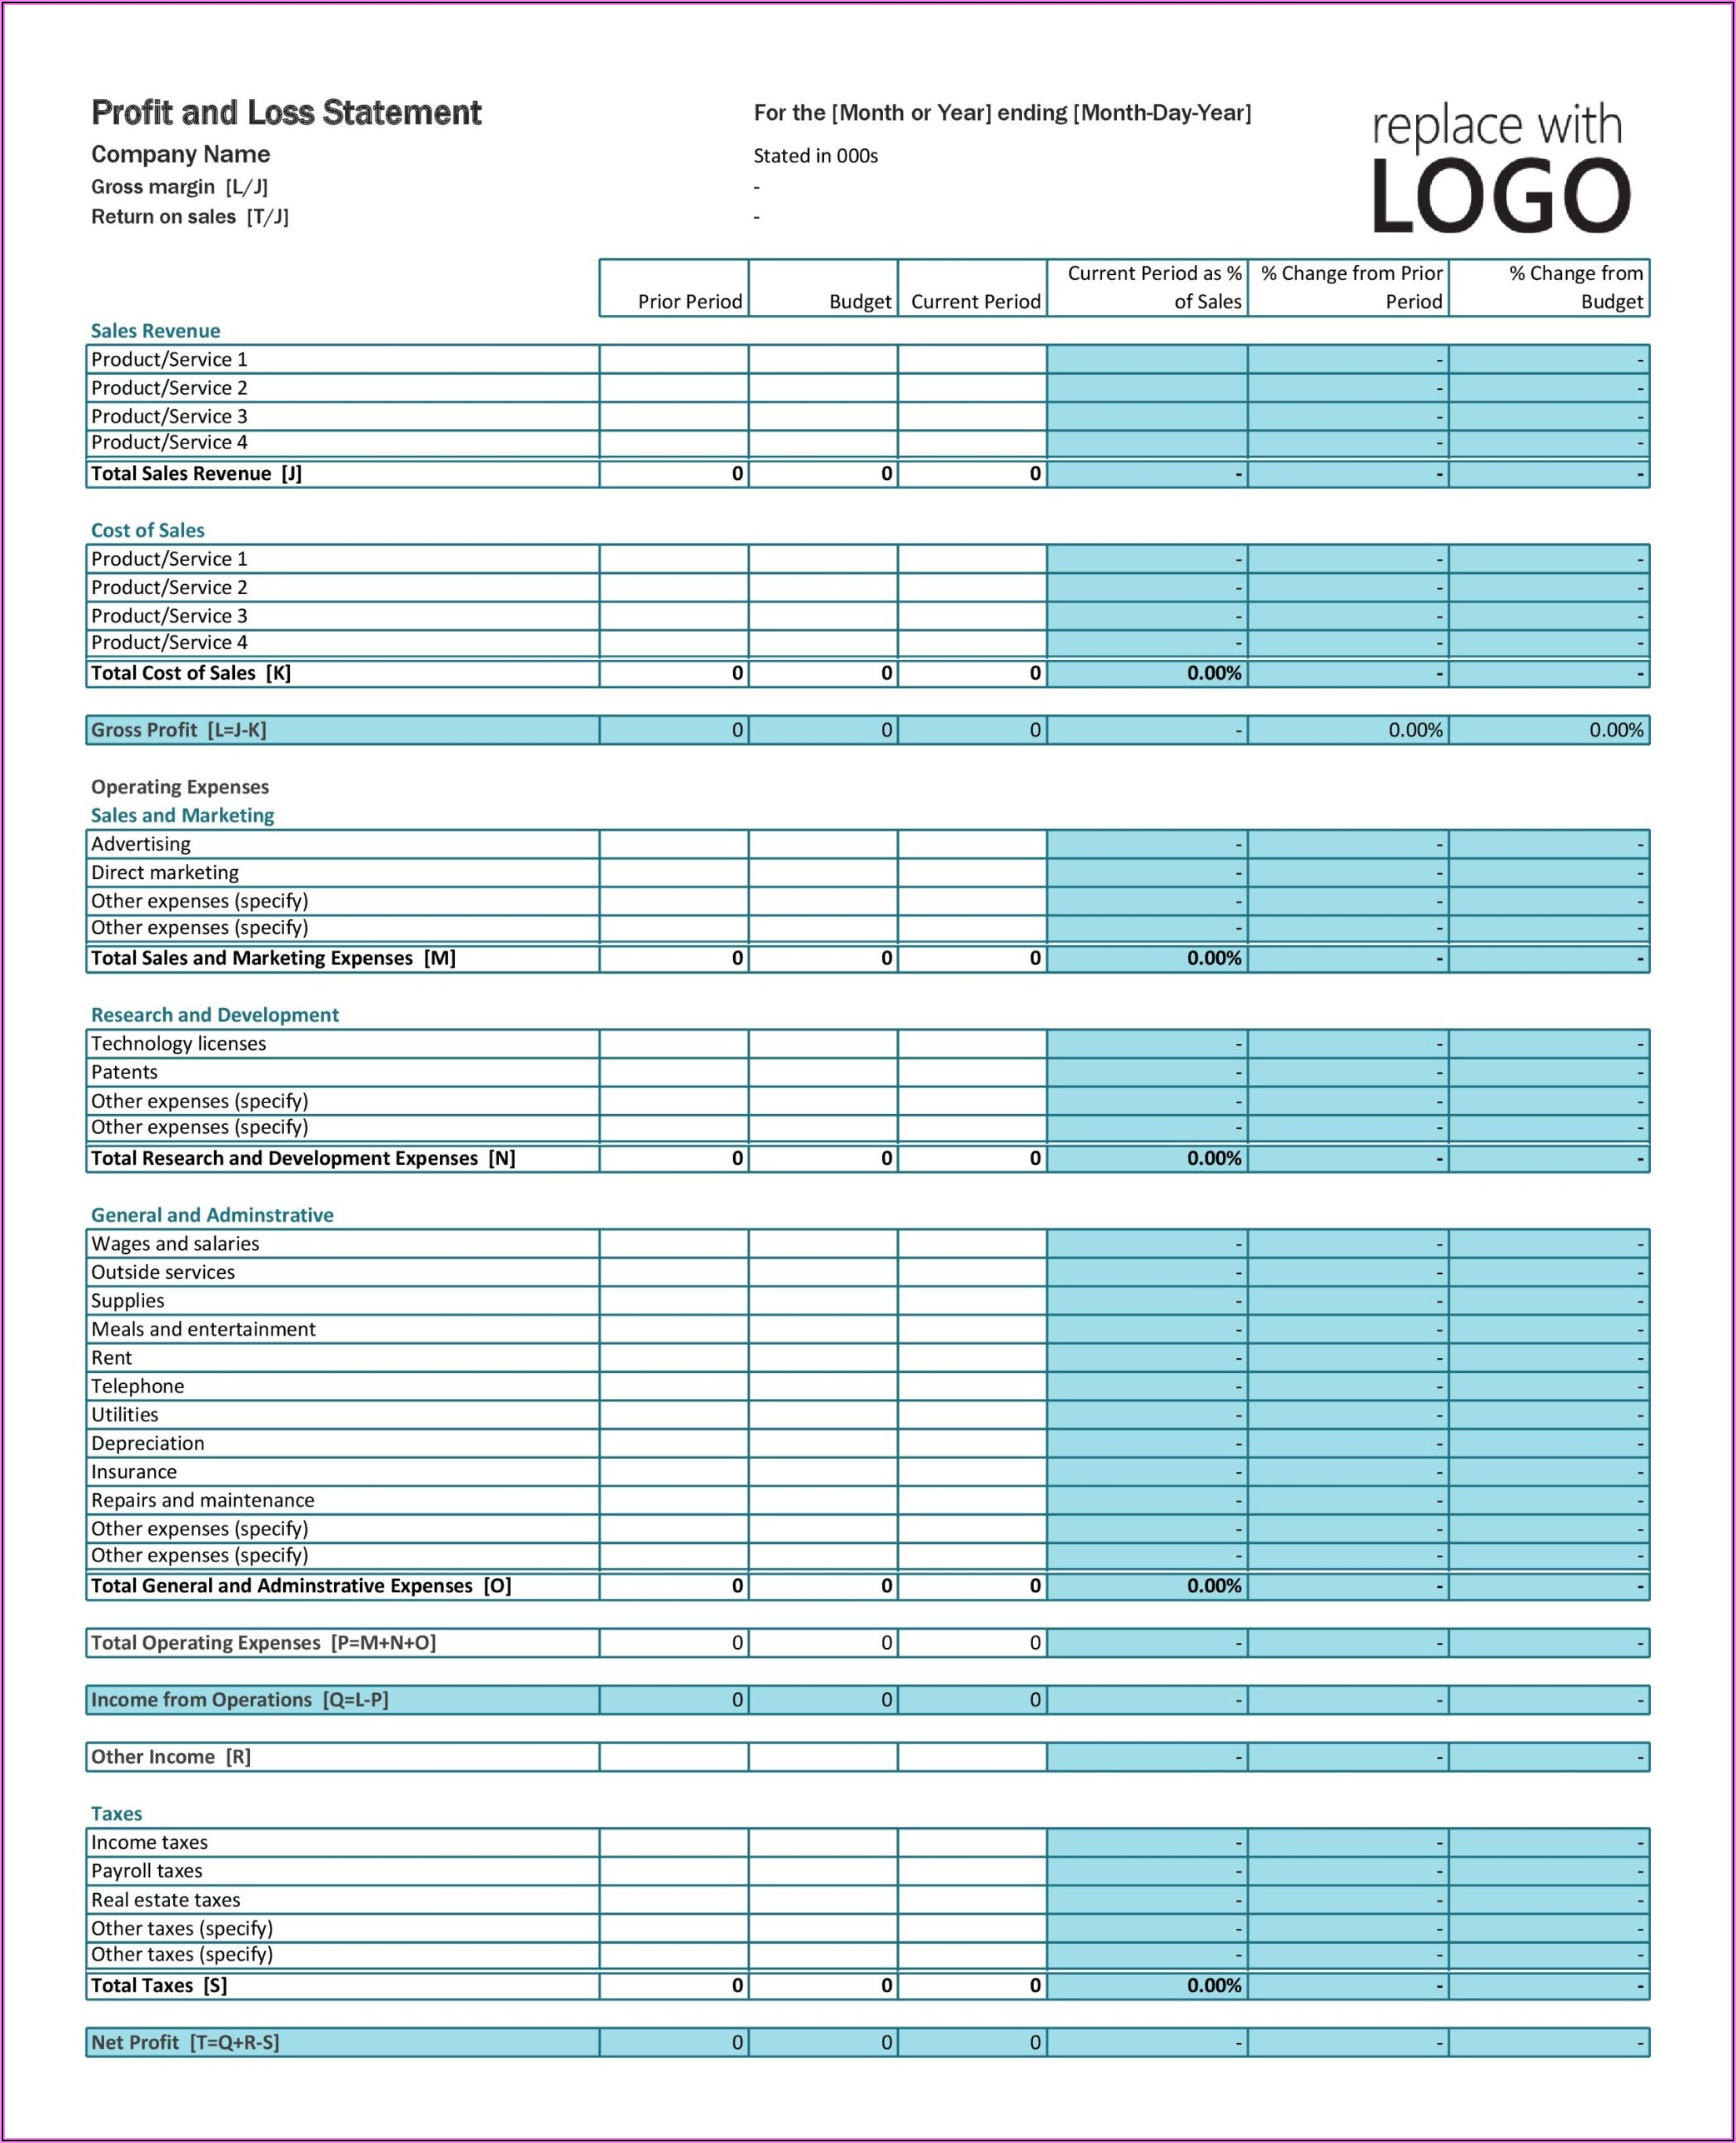 Year To Date Profit And Loss Statement And Balance Sheet Template